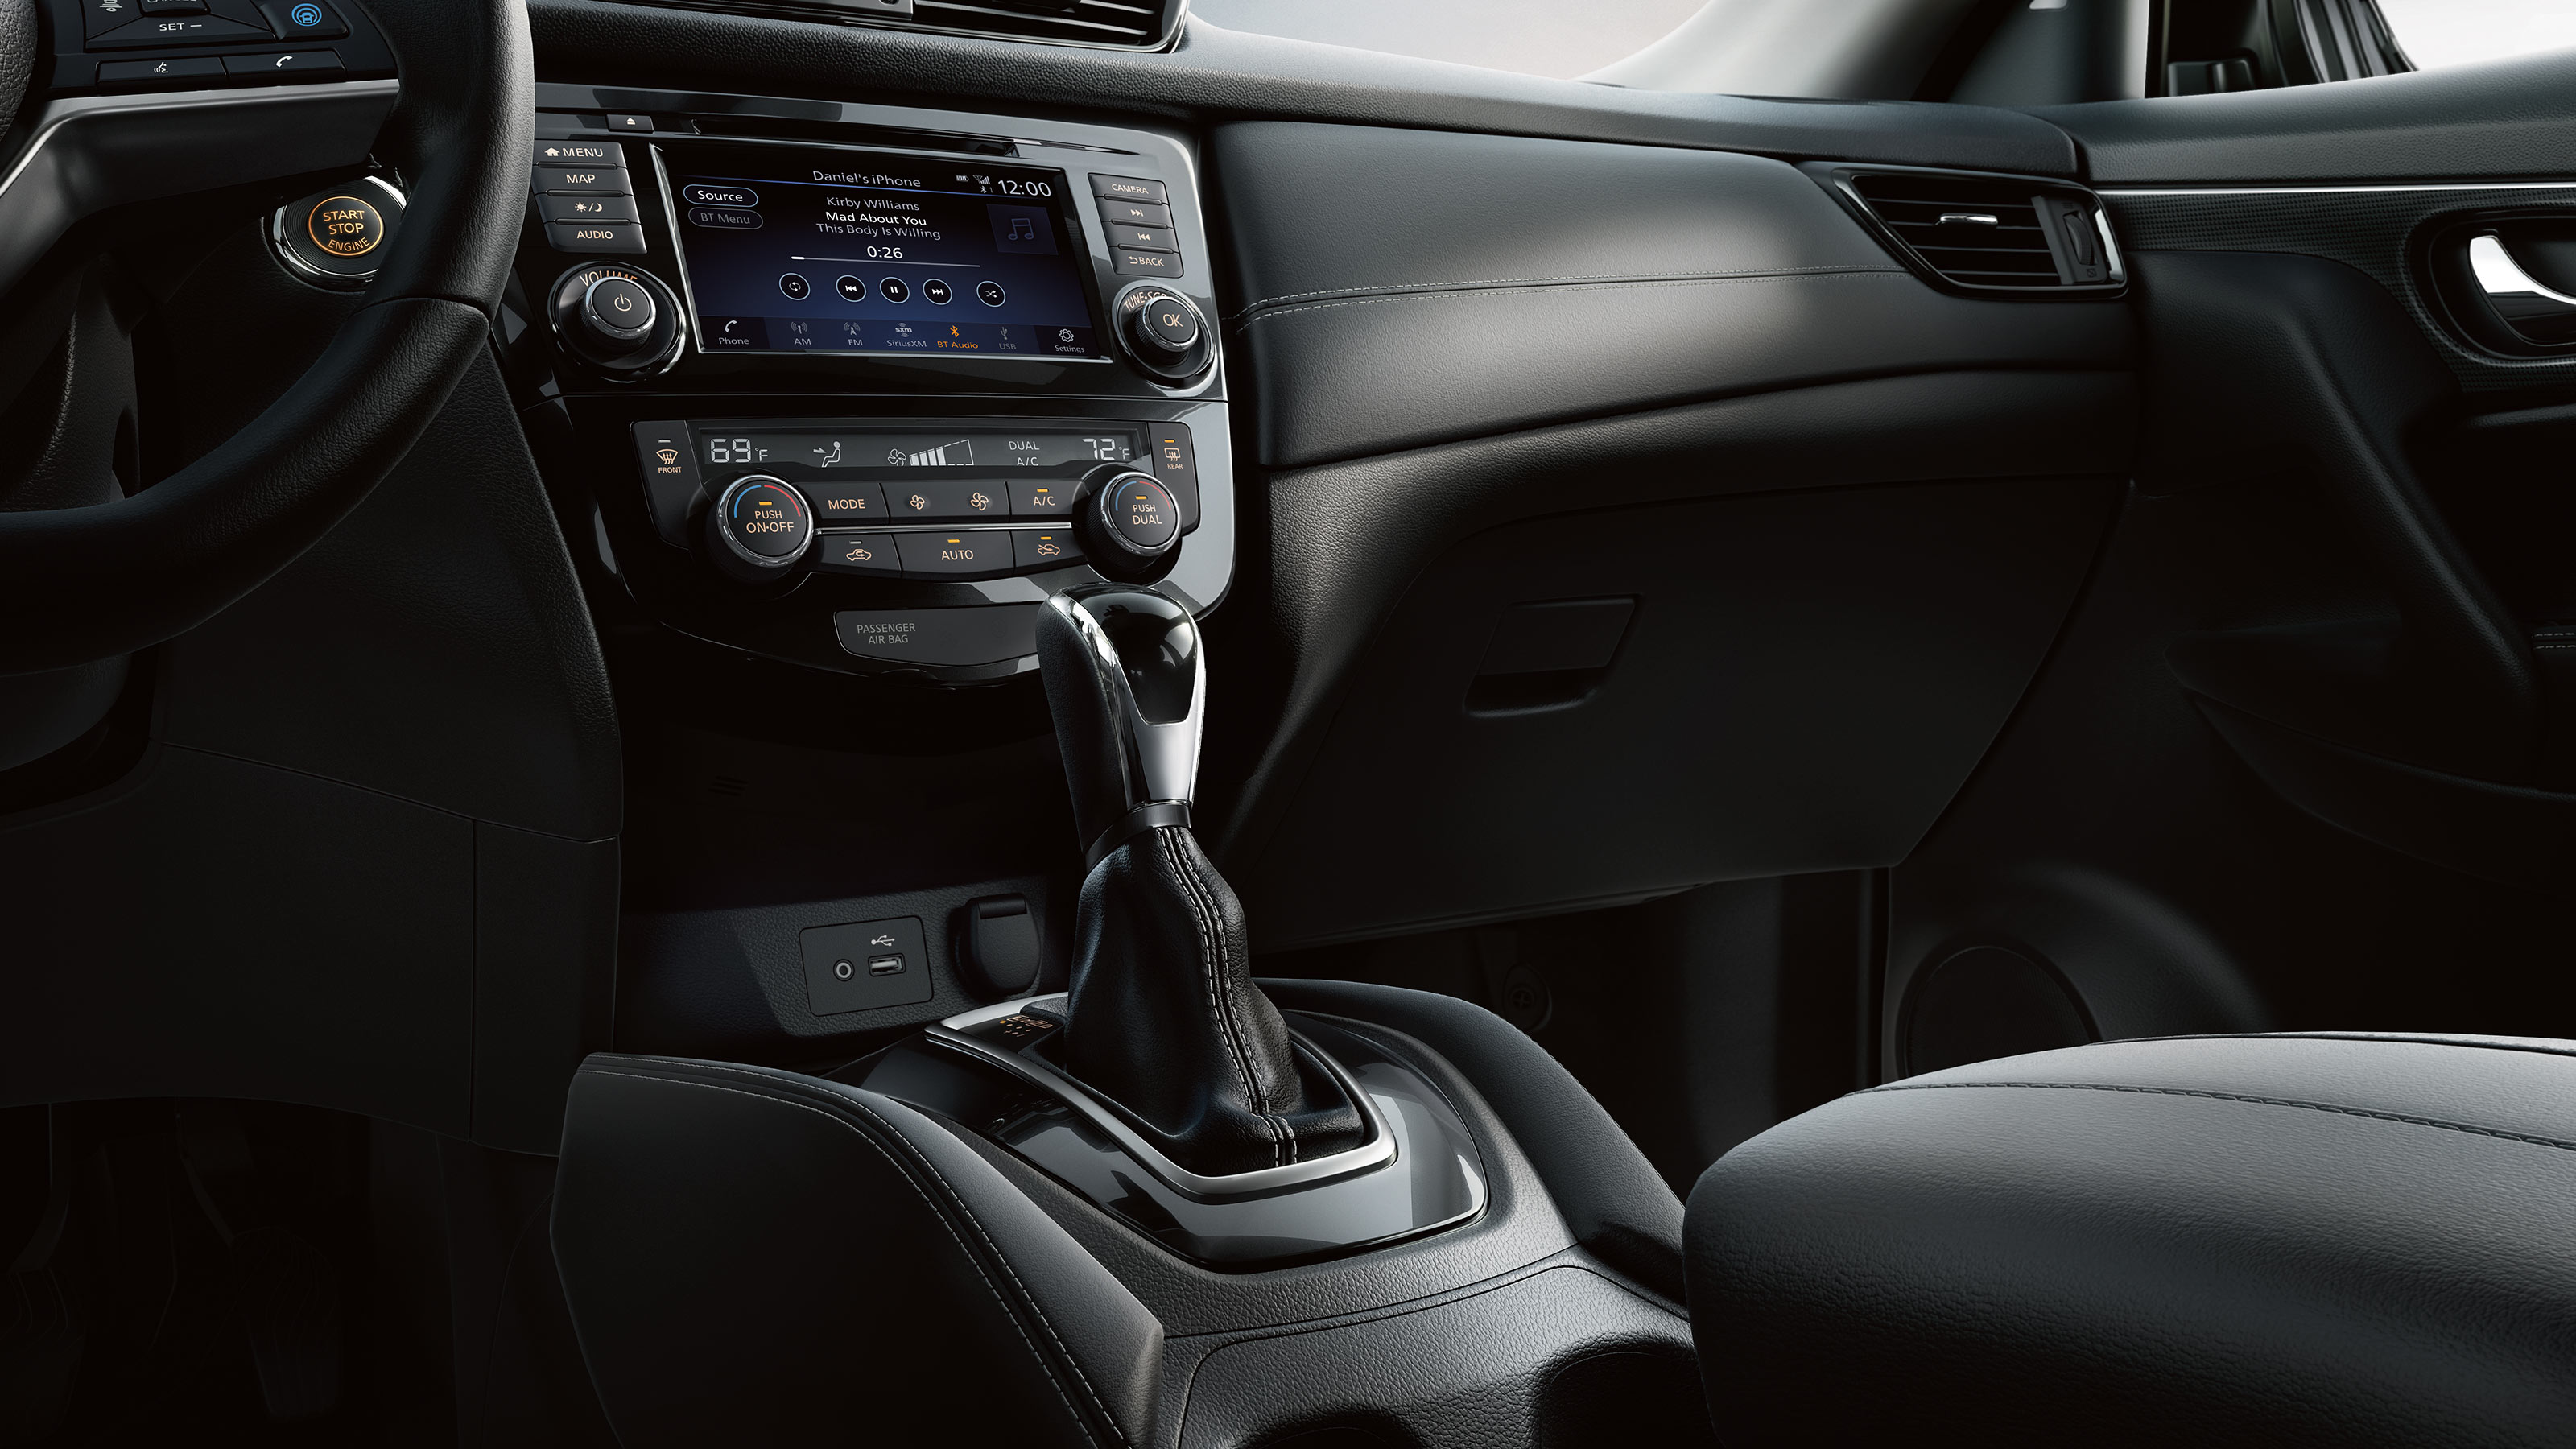 Upscale Cabin of the 2020 Rogue